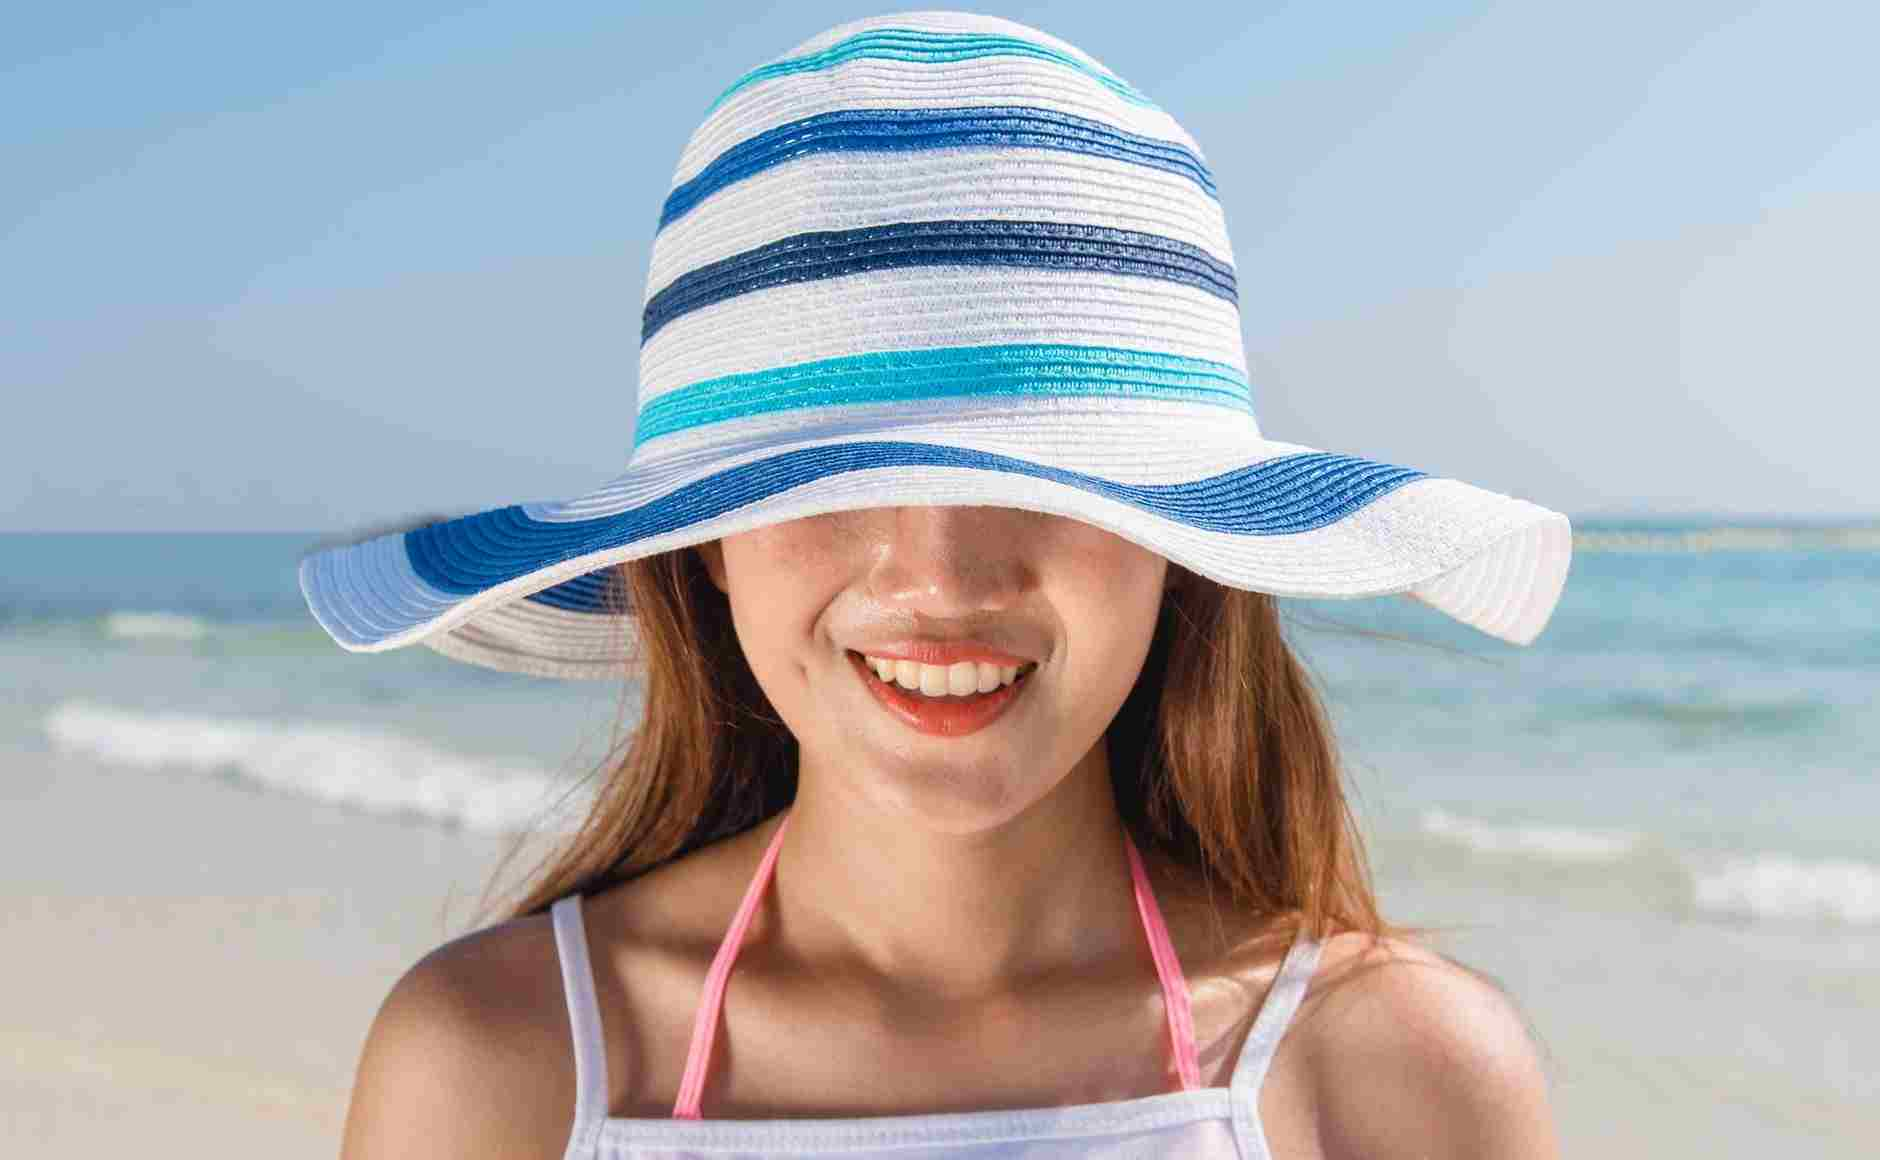 How to remove sun tan from face and neck at home